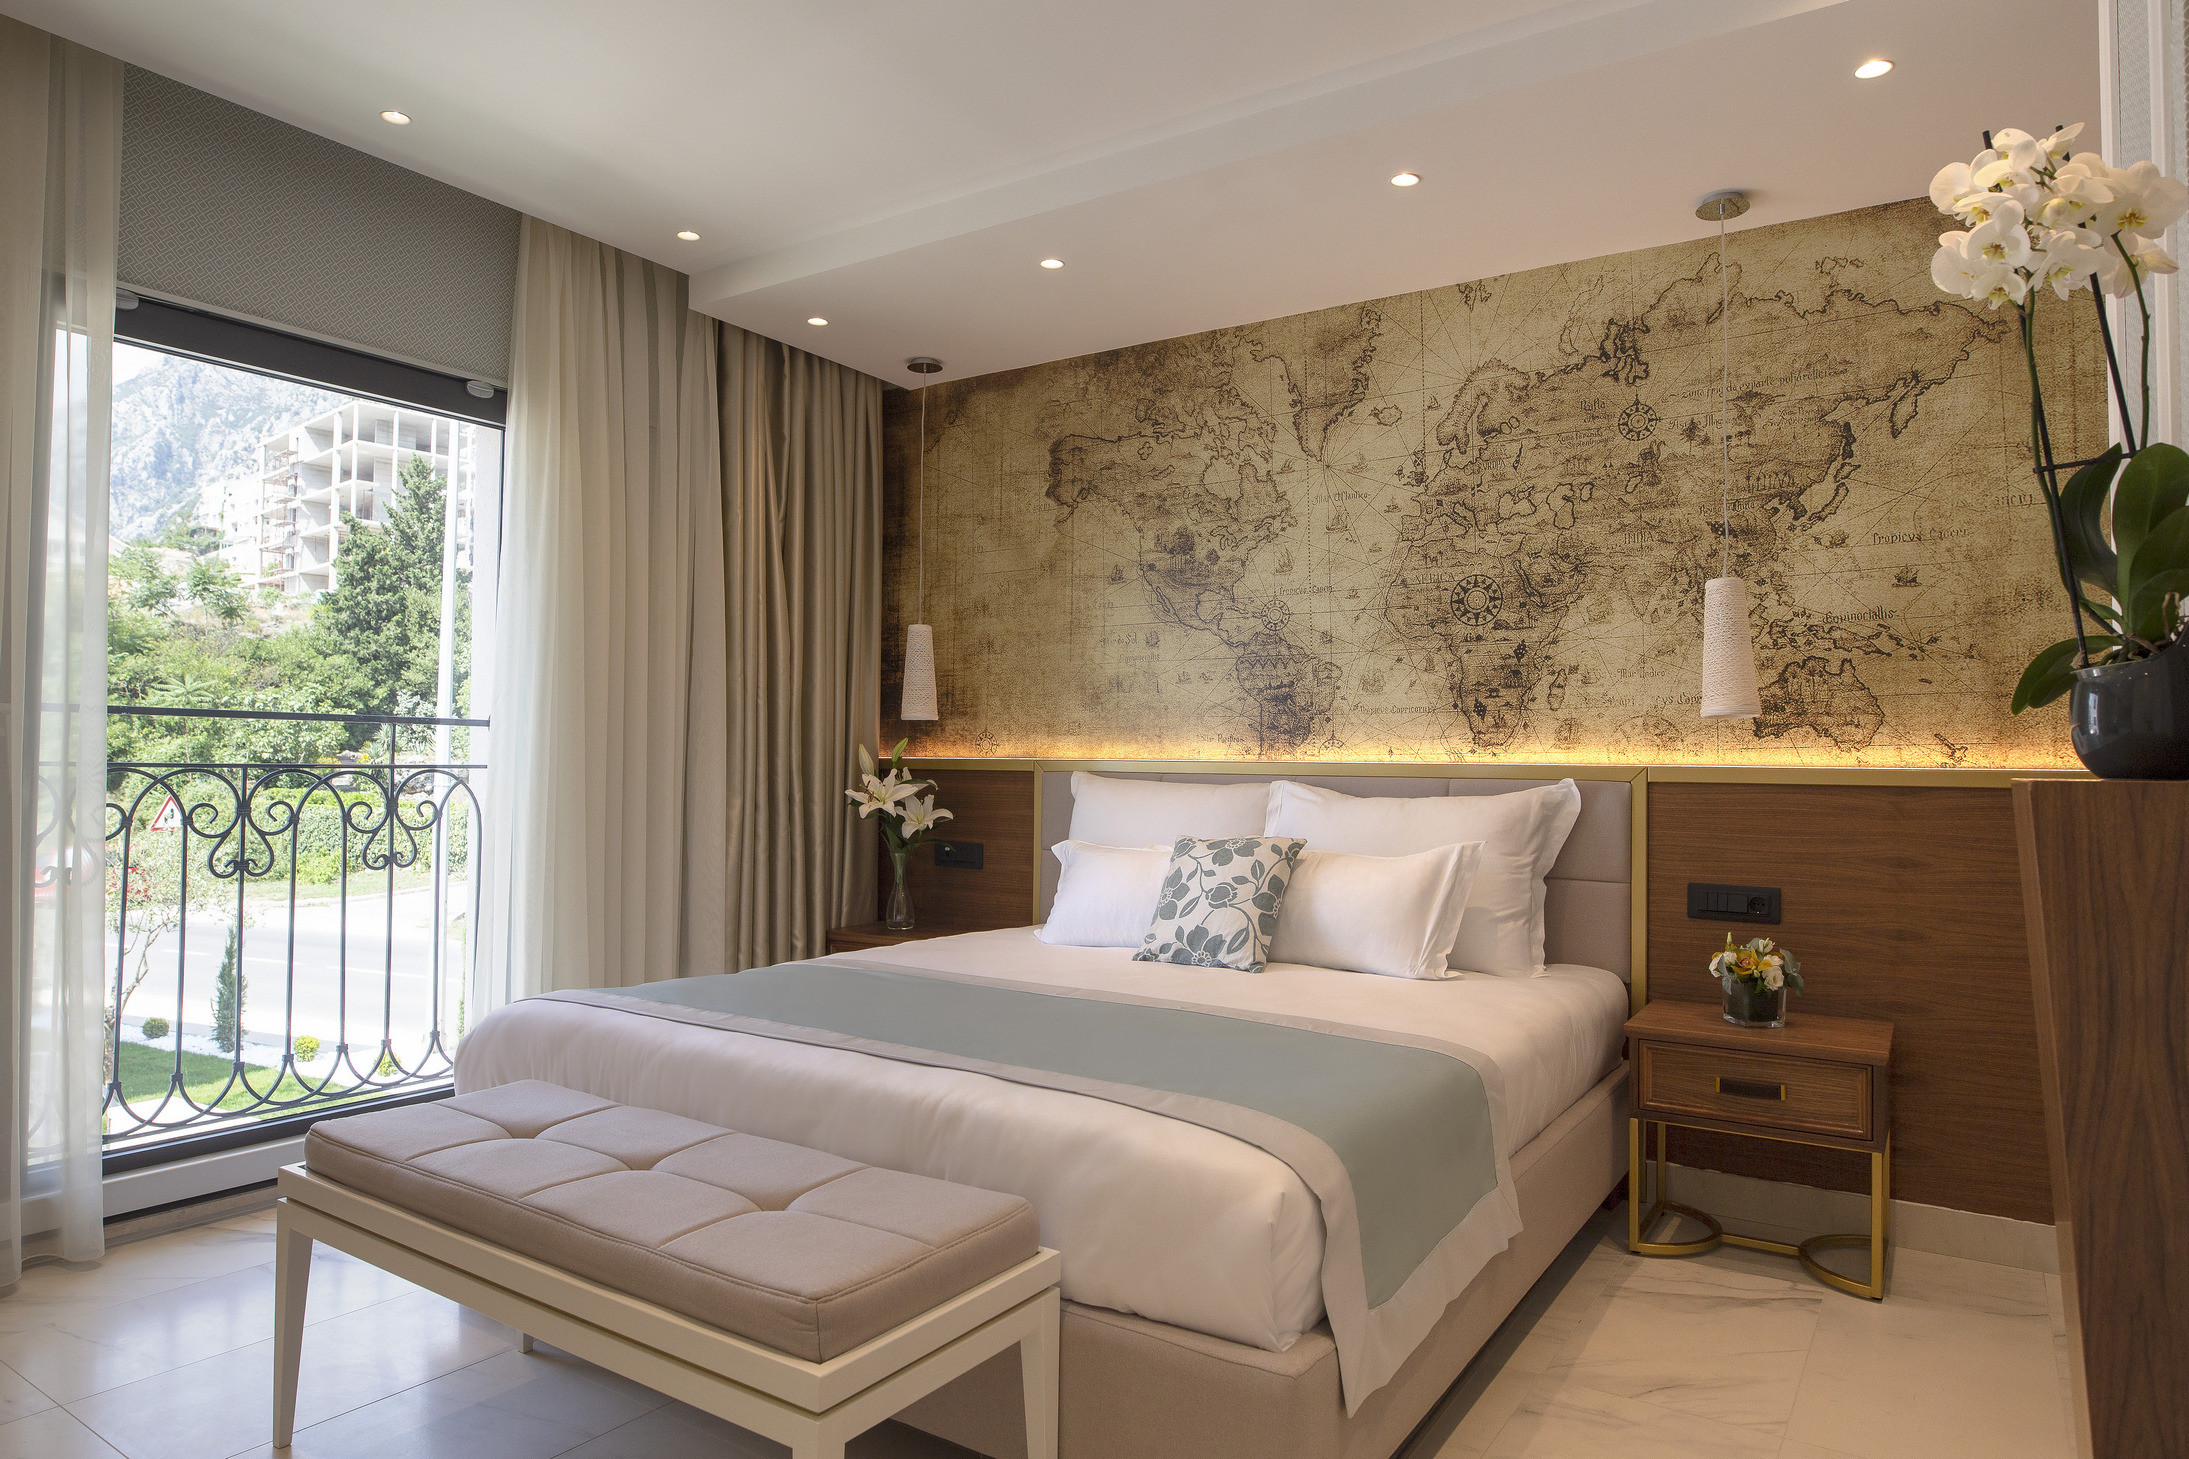 Deluxe Room - Advanced Purchase Rate